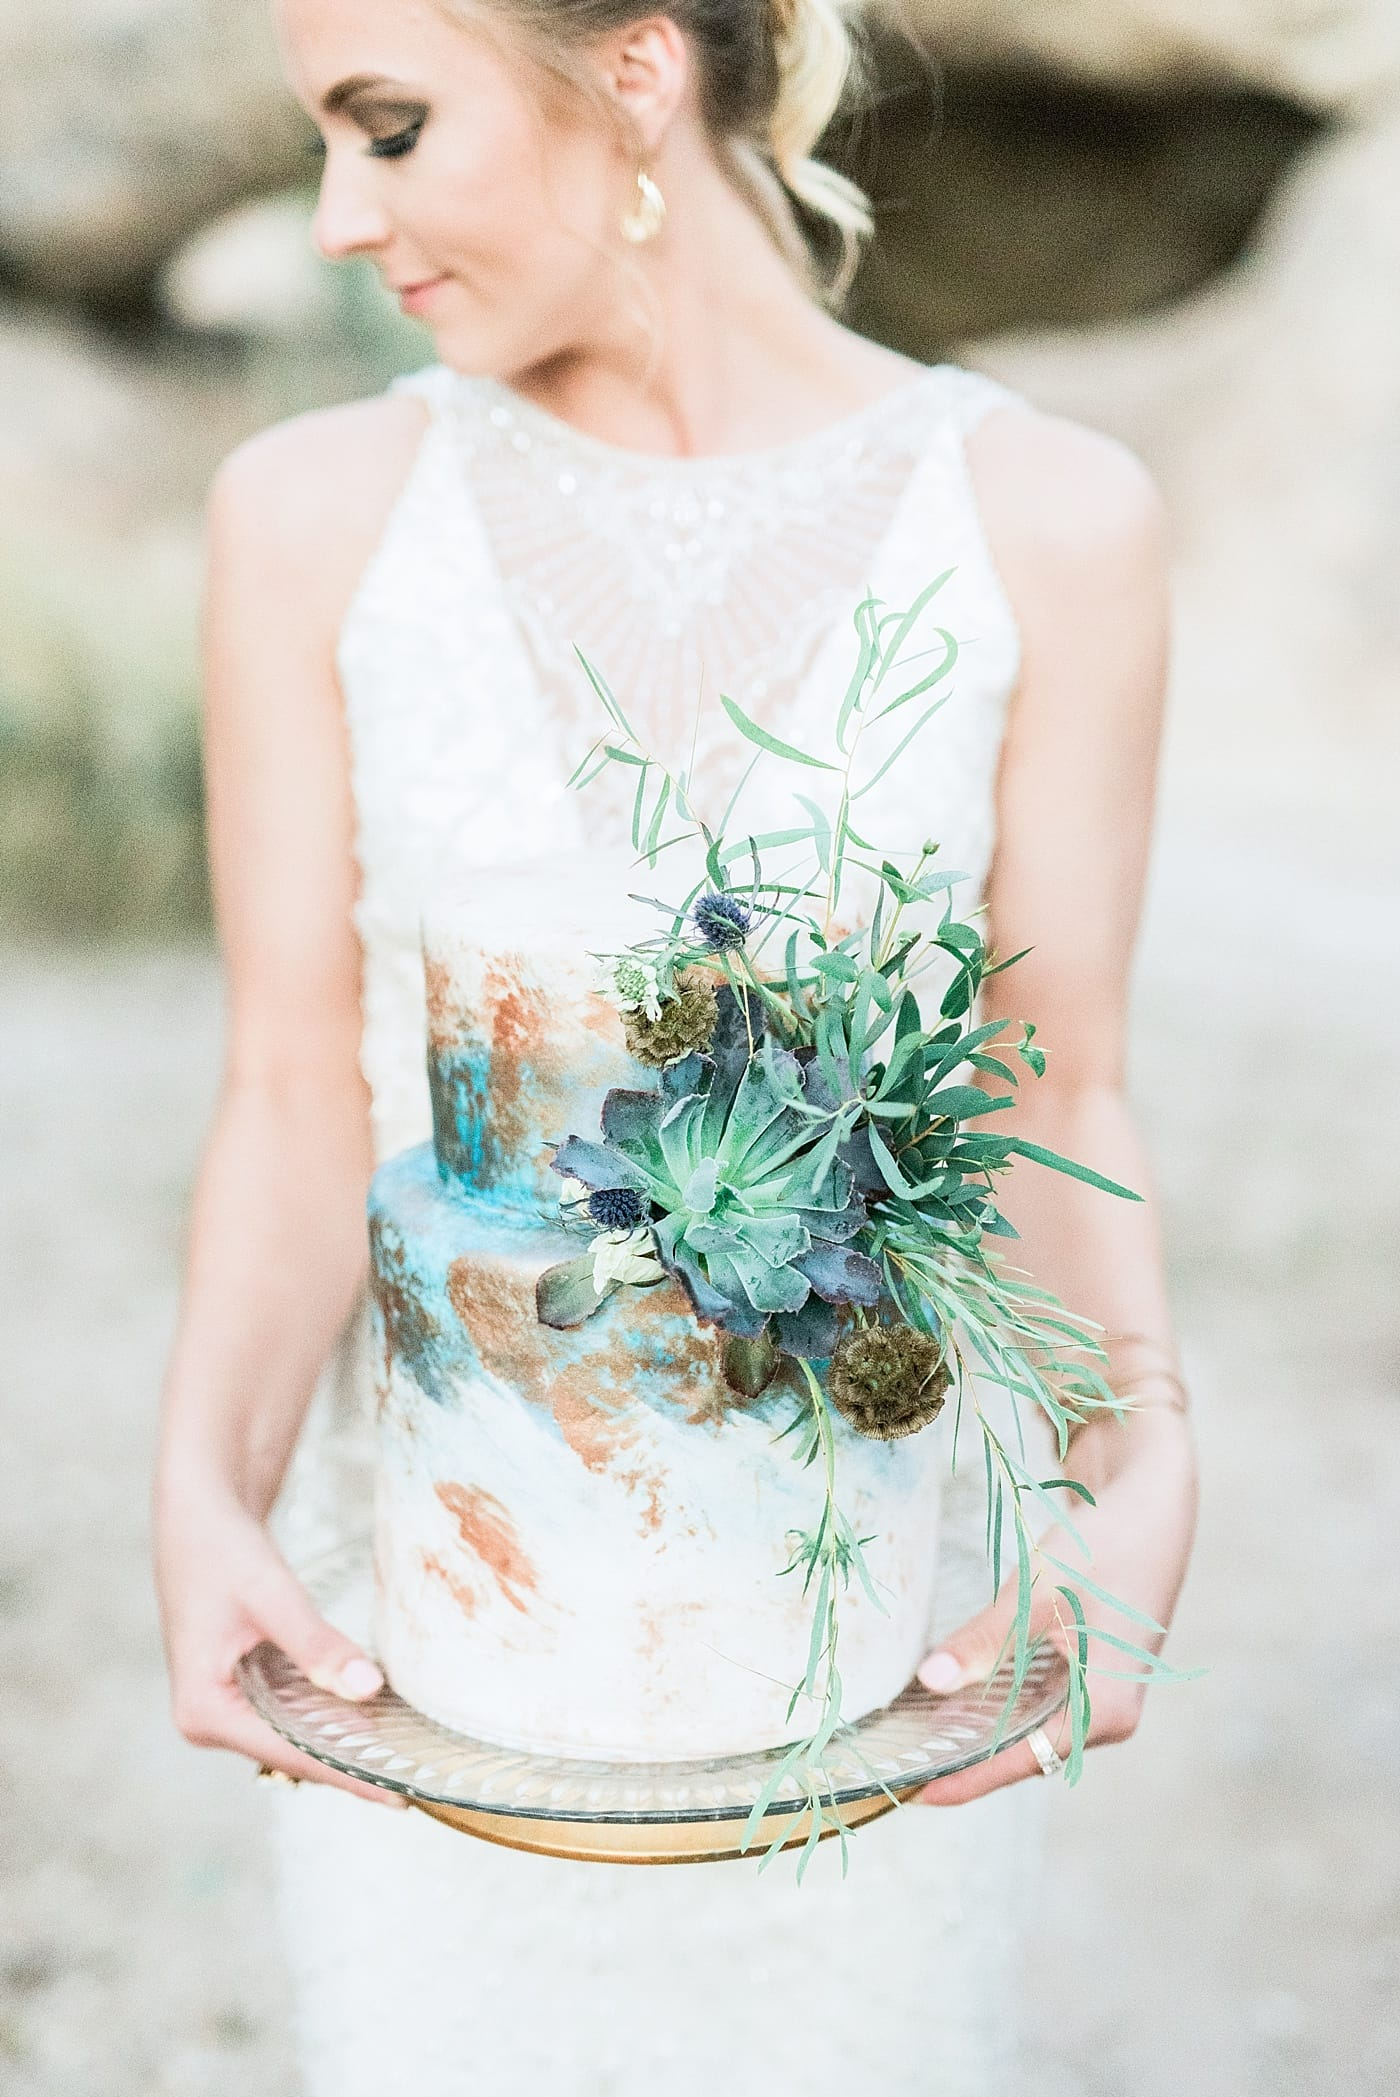 City of Rocks Styled Shoot Featuring Maui - Maui wedding dress by Sottero and Midgley